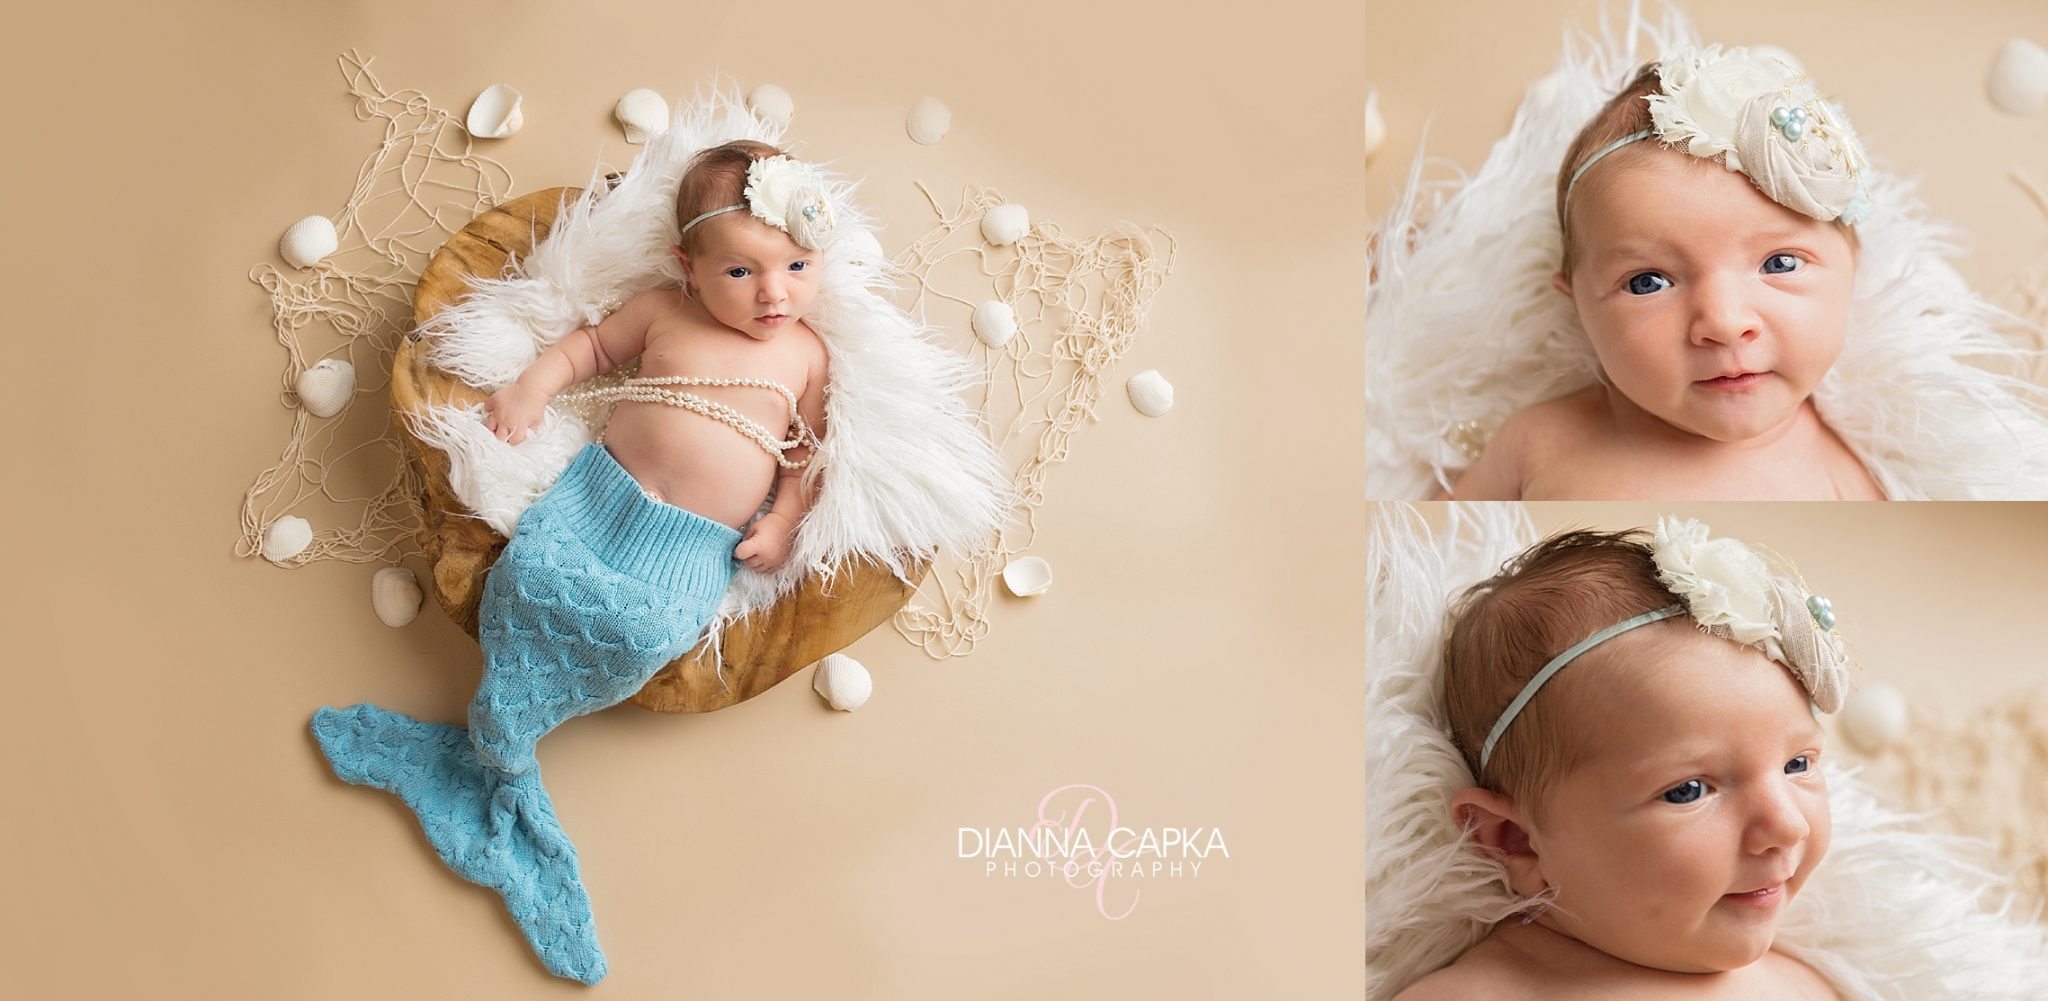 Elliette's newborn session Awake and alert newborn baby